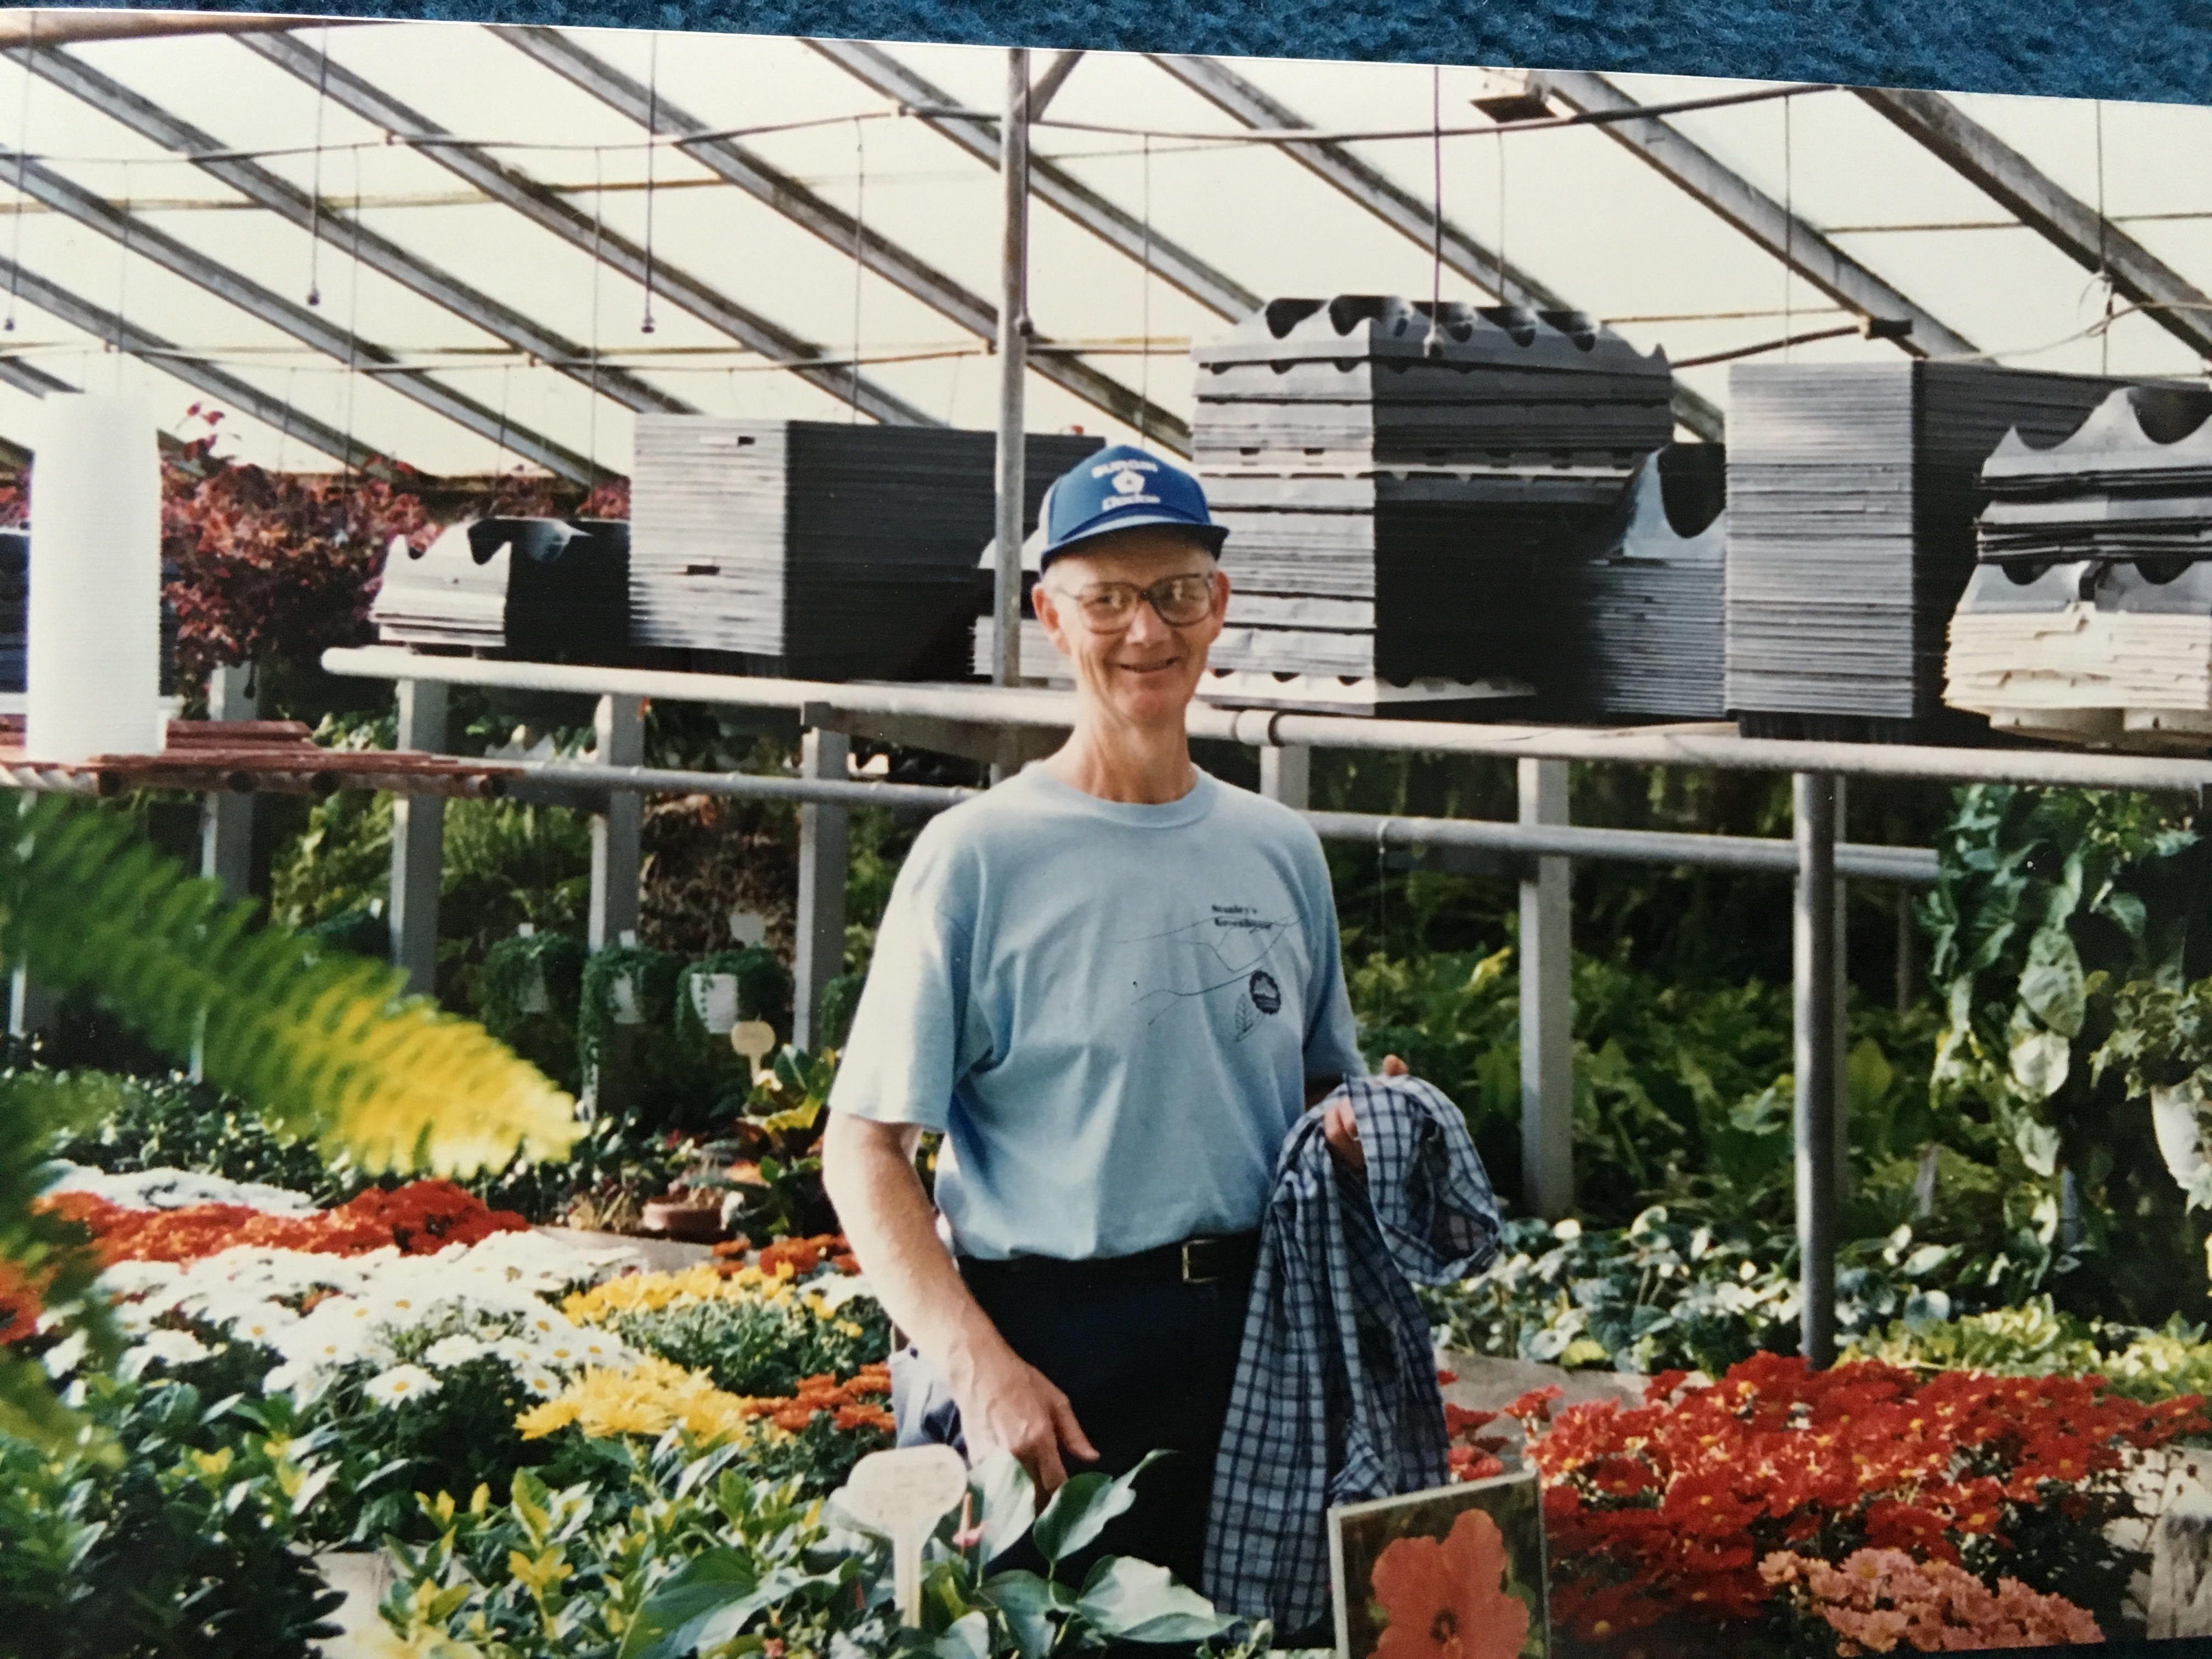 The greenhouse stanley - Daddy At His Last Job At Stanley S Greenhouse Early 2000s